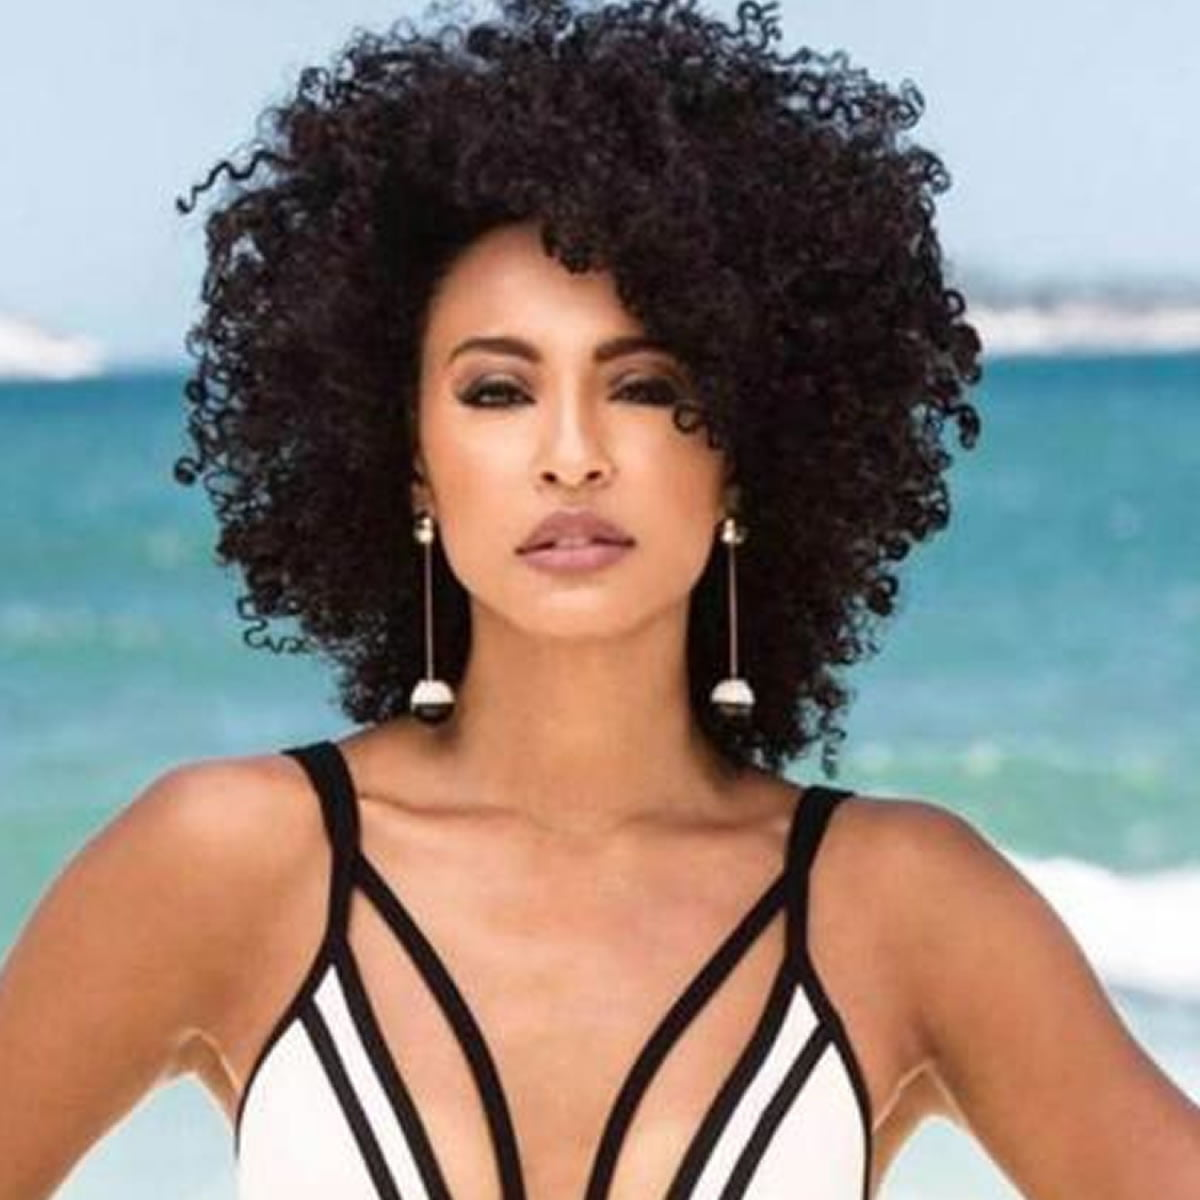 Black Women Medium Lenght Curly Hairstyles 2018-2019 - Page 2 of 5